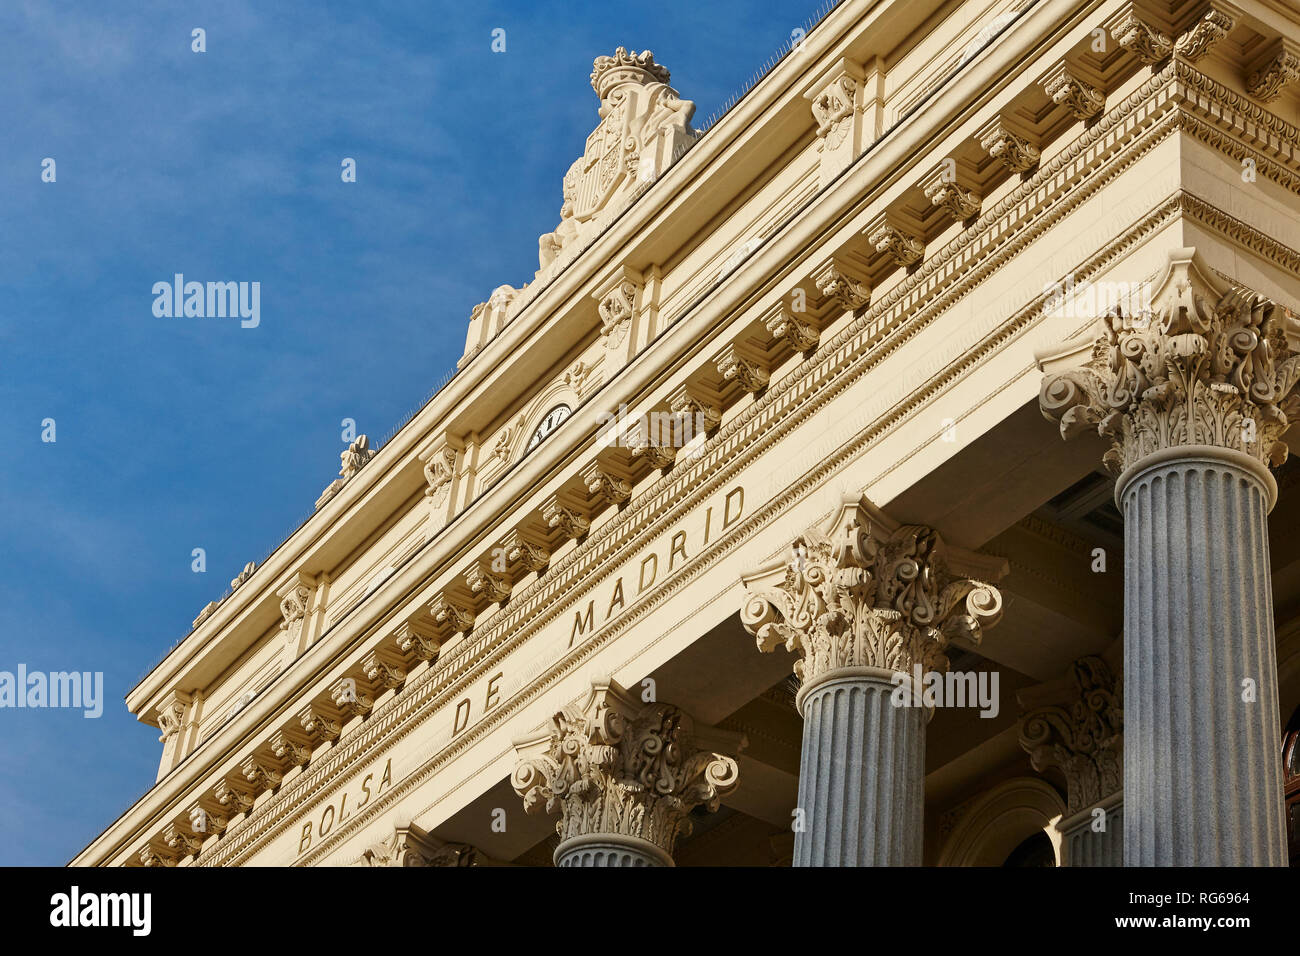 Spanish stock exchange building facade in downtown financial Madrid. Spain Stock Photo